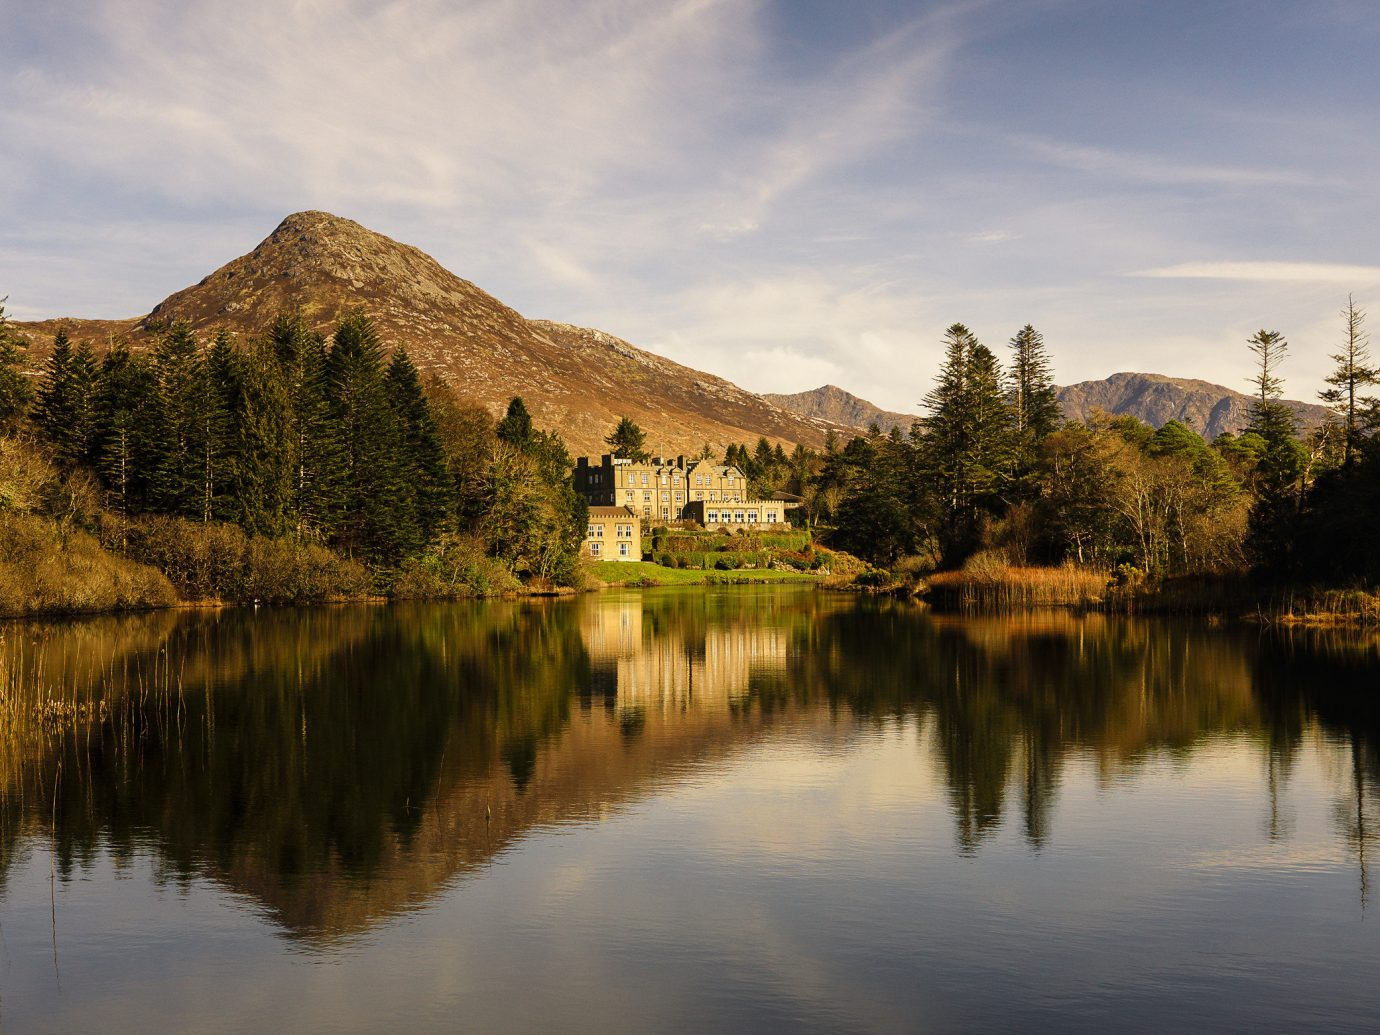 View of lake and grounds of Ballynahinch Castle in Ireland